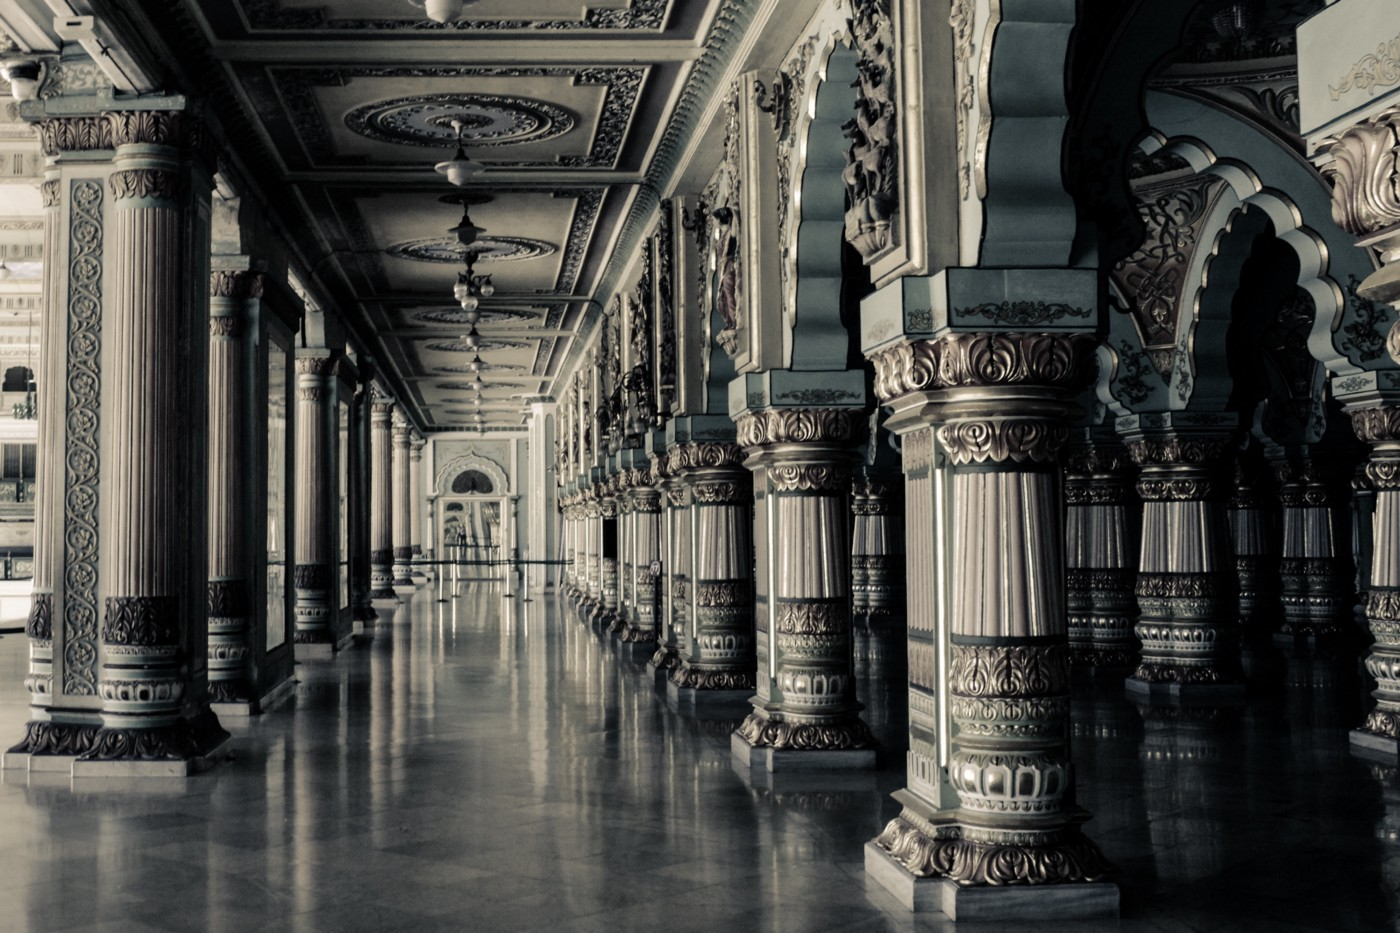 A hall filled with Greek columns.